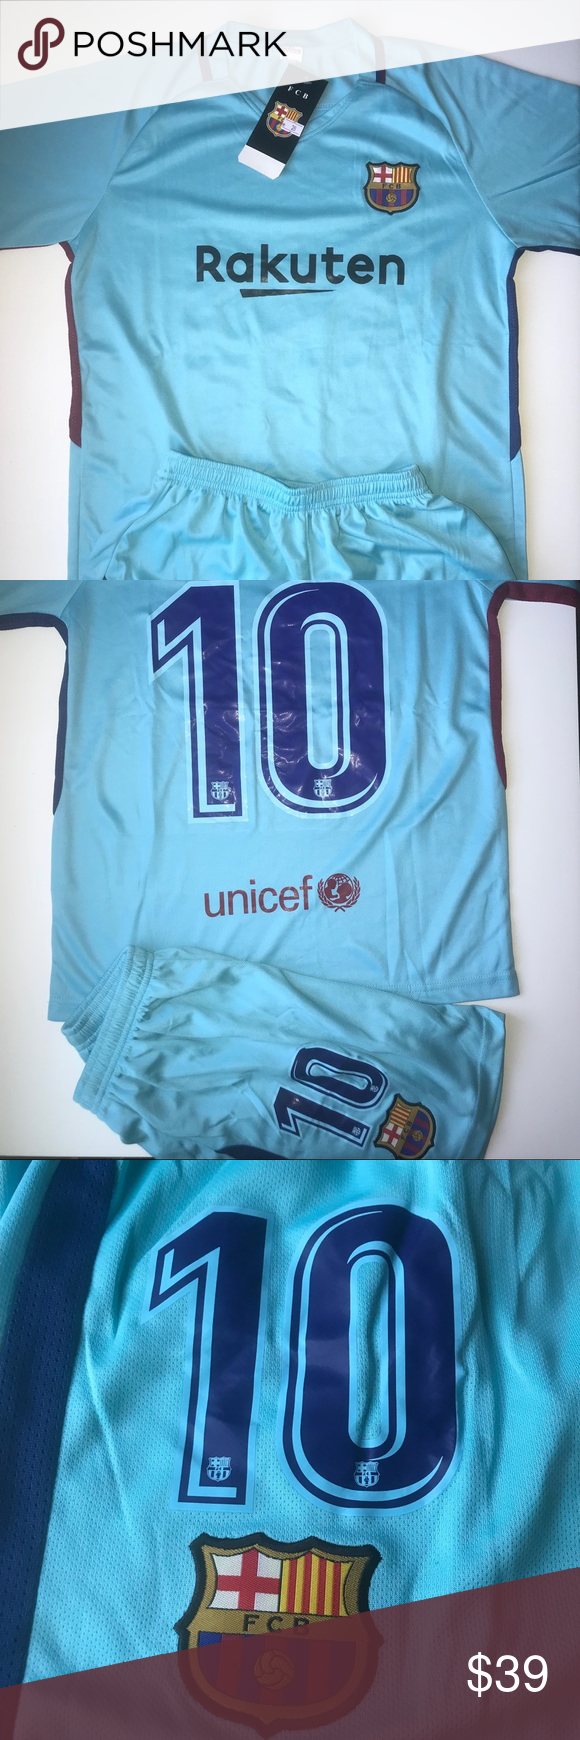 Messi barcelona kids size away soccer jersey messi player